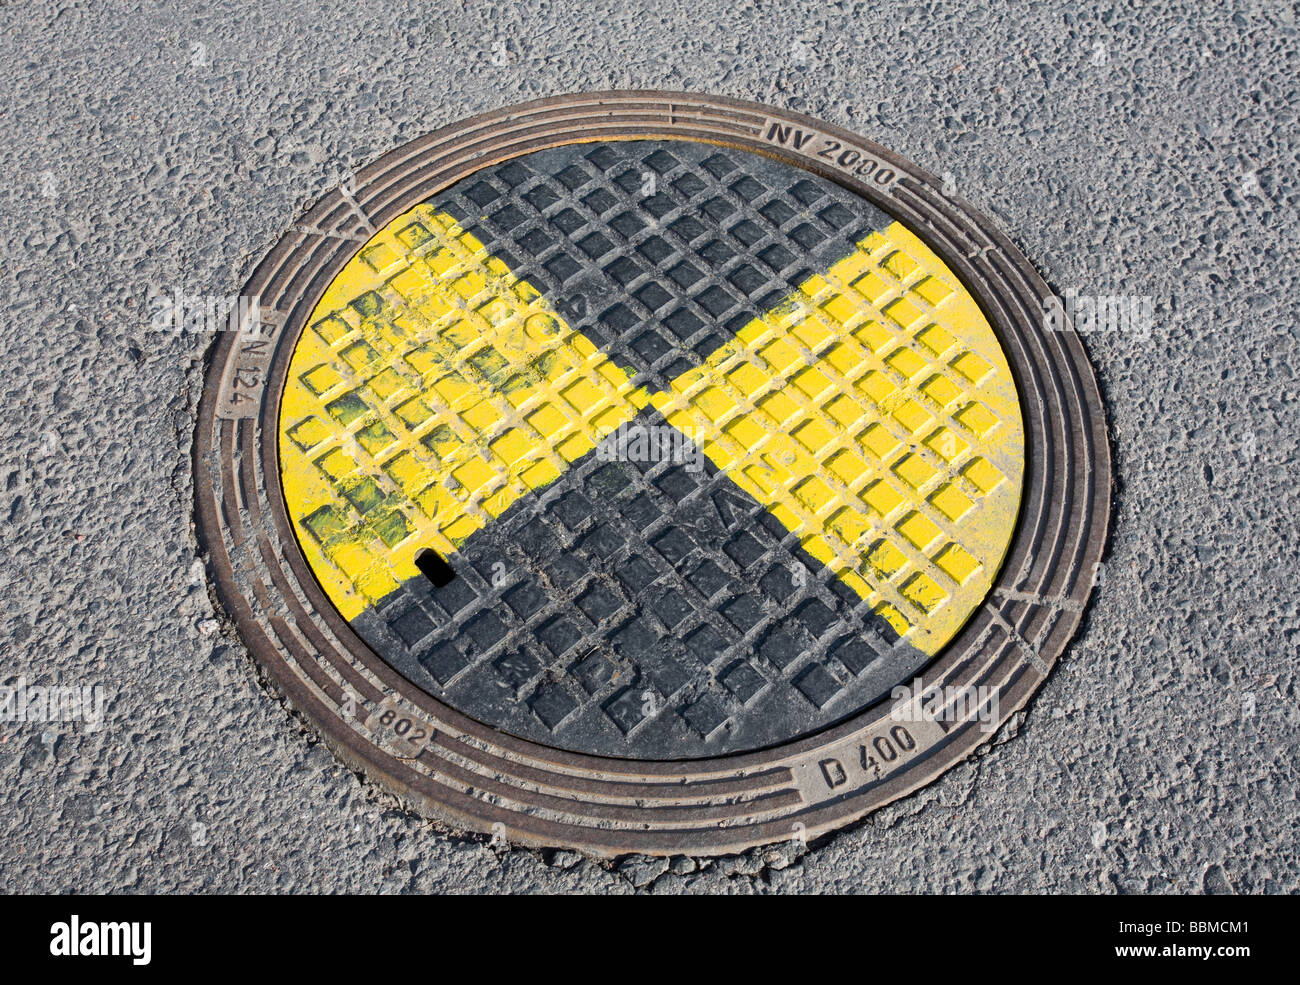 man hole sewer cover painted yellow and black - Stock Image